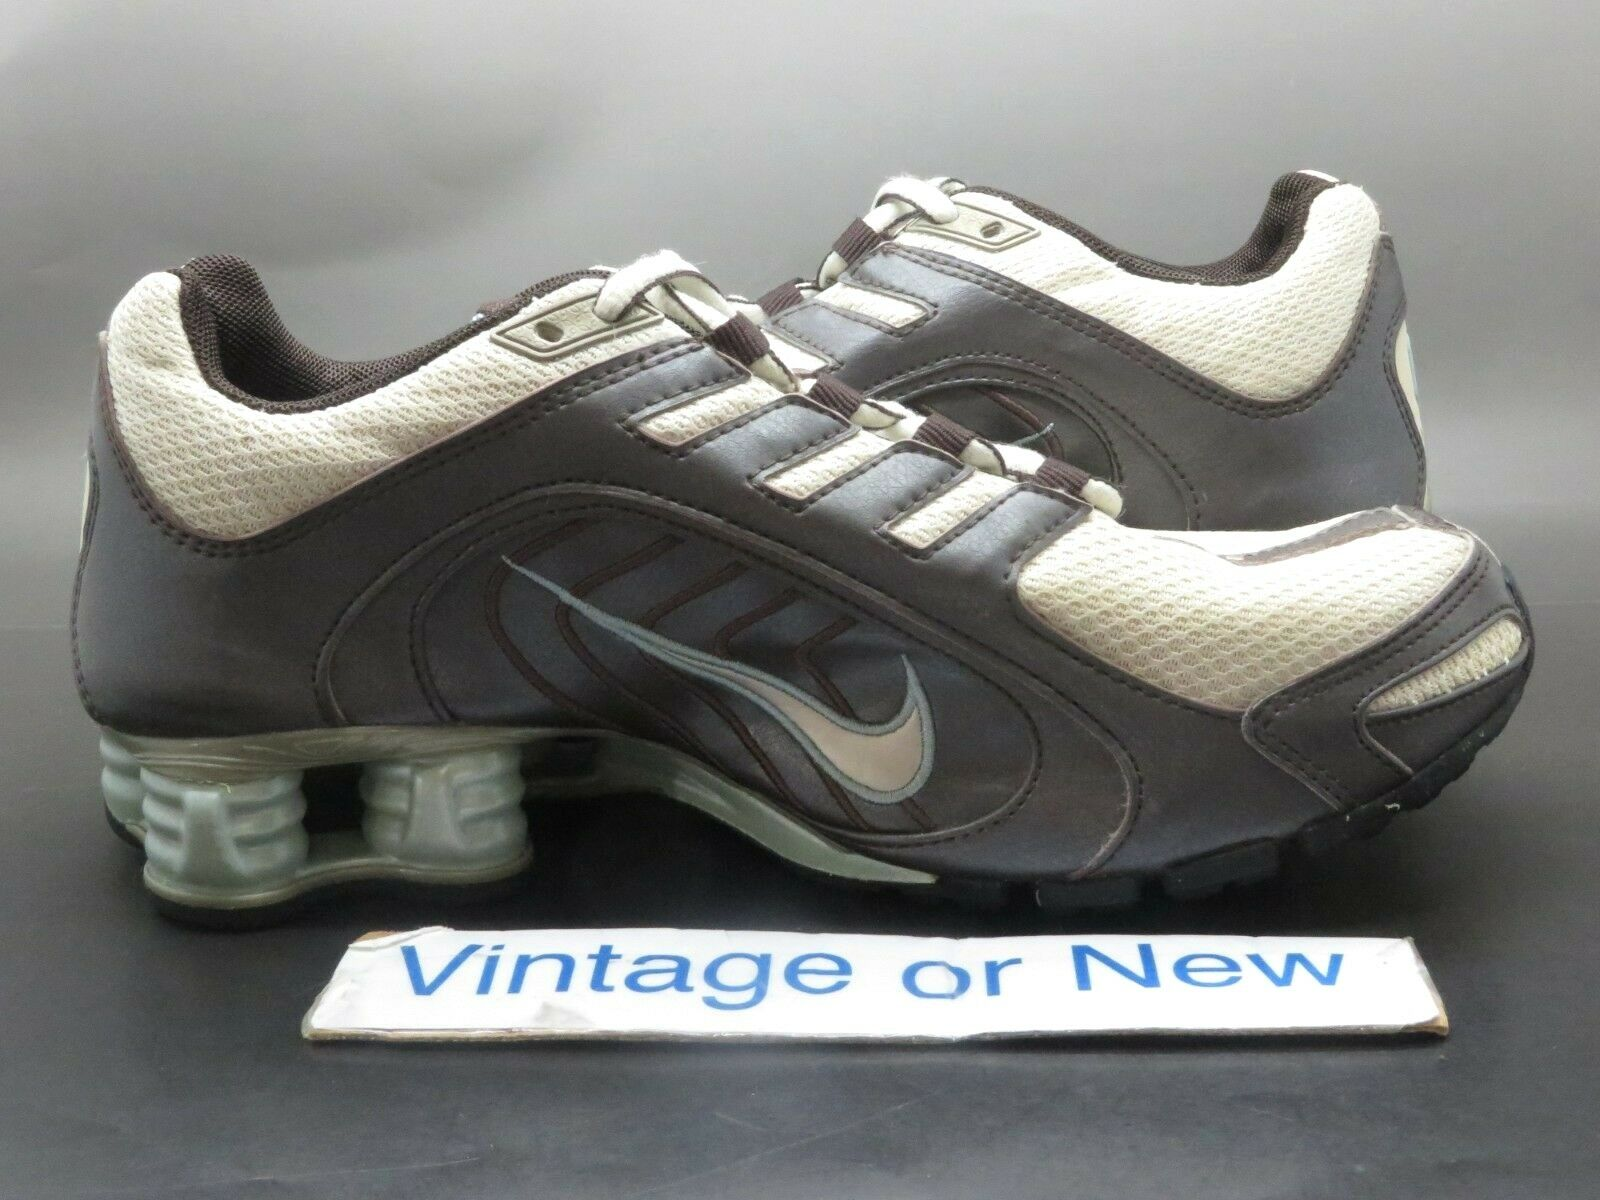 Women's Nike Shox Navina Bone Brown Teal 313809-201 313809-201 313809-201 Running shoes 2007 sz 6.5 40f4a3